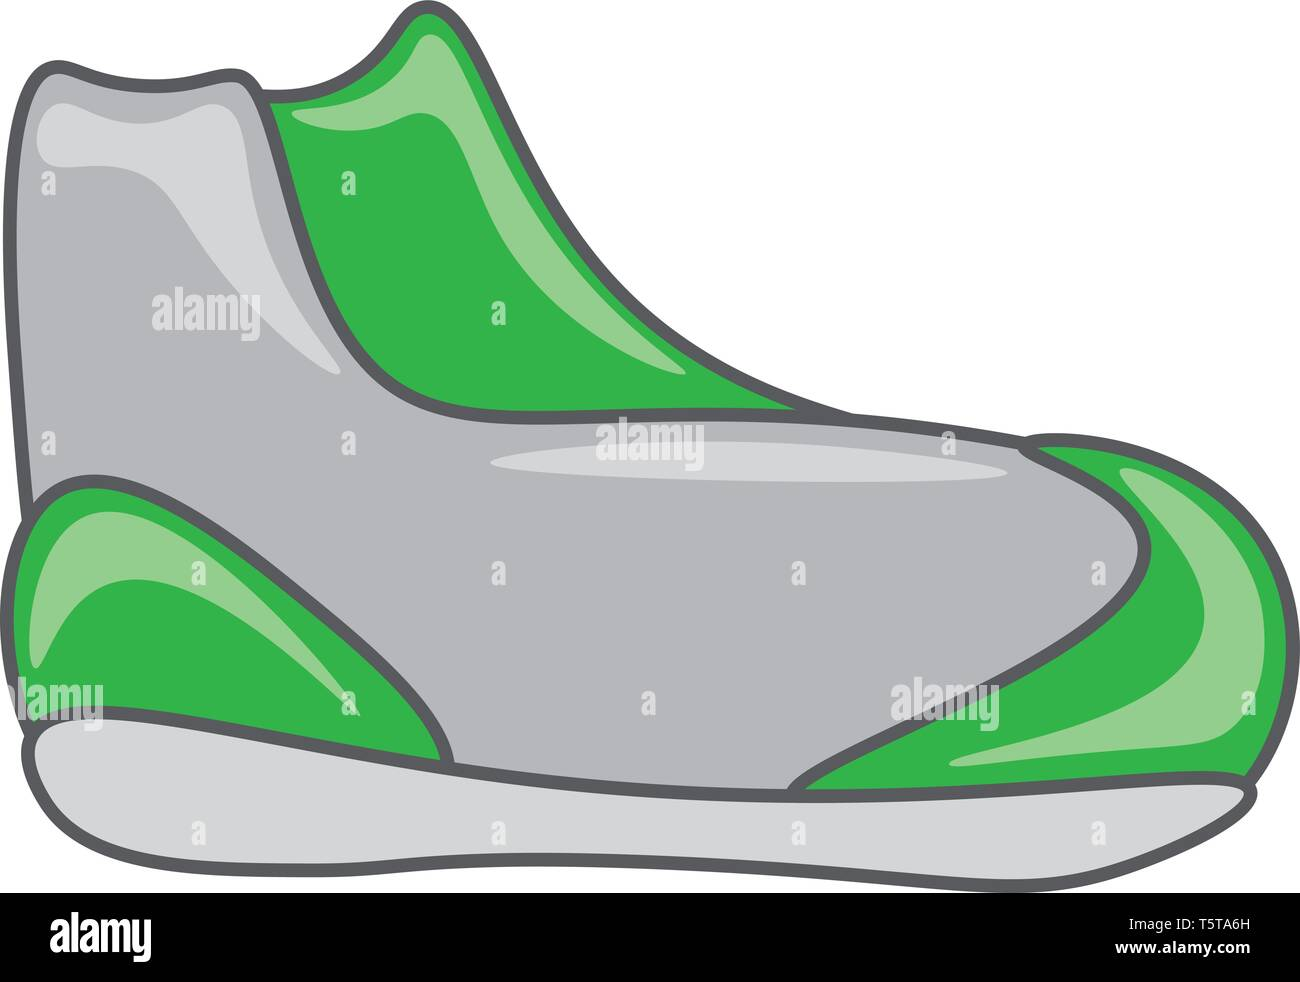 hight resolution of an image of a running shoe of gray and green color vector color drawing or illustration